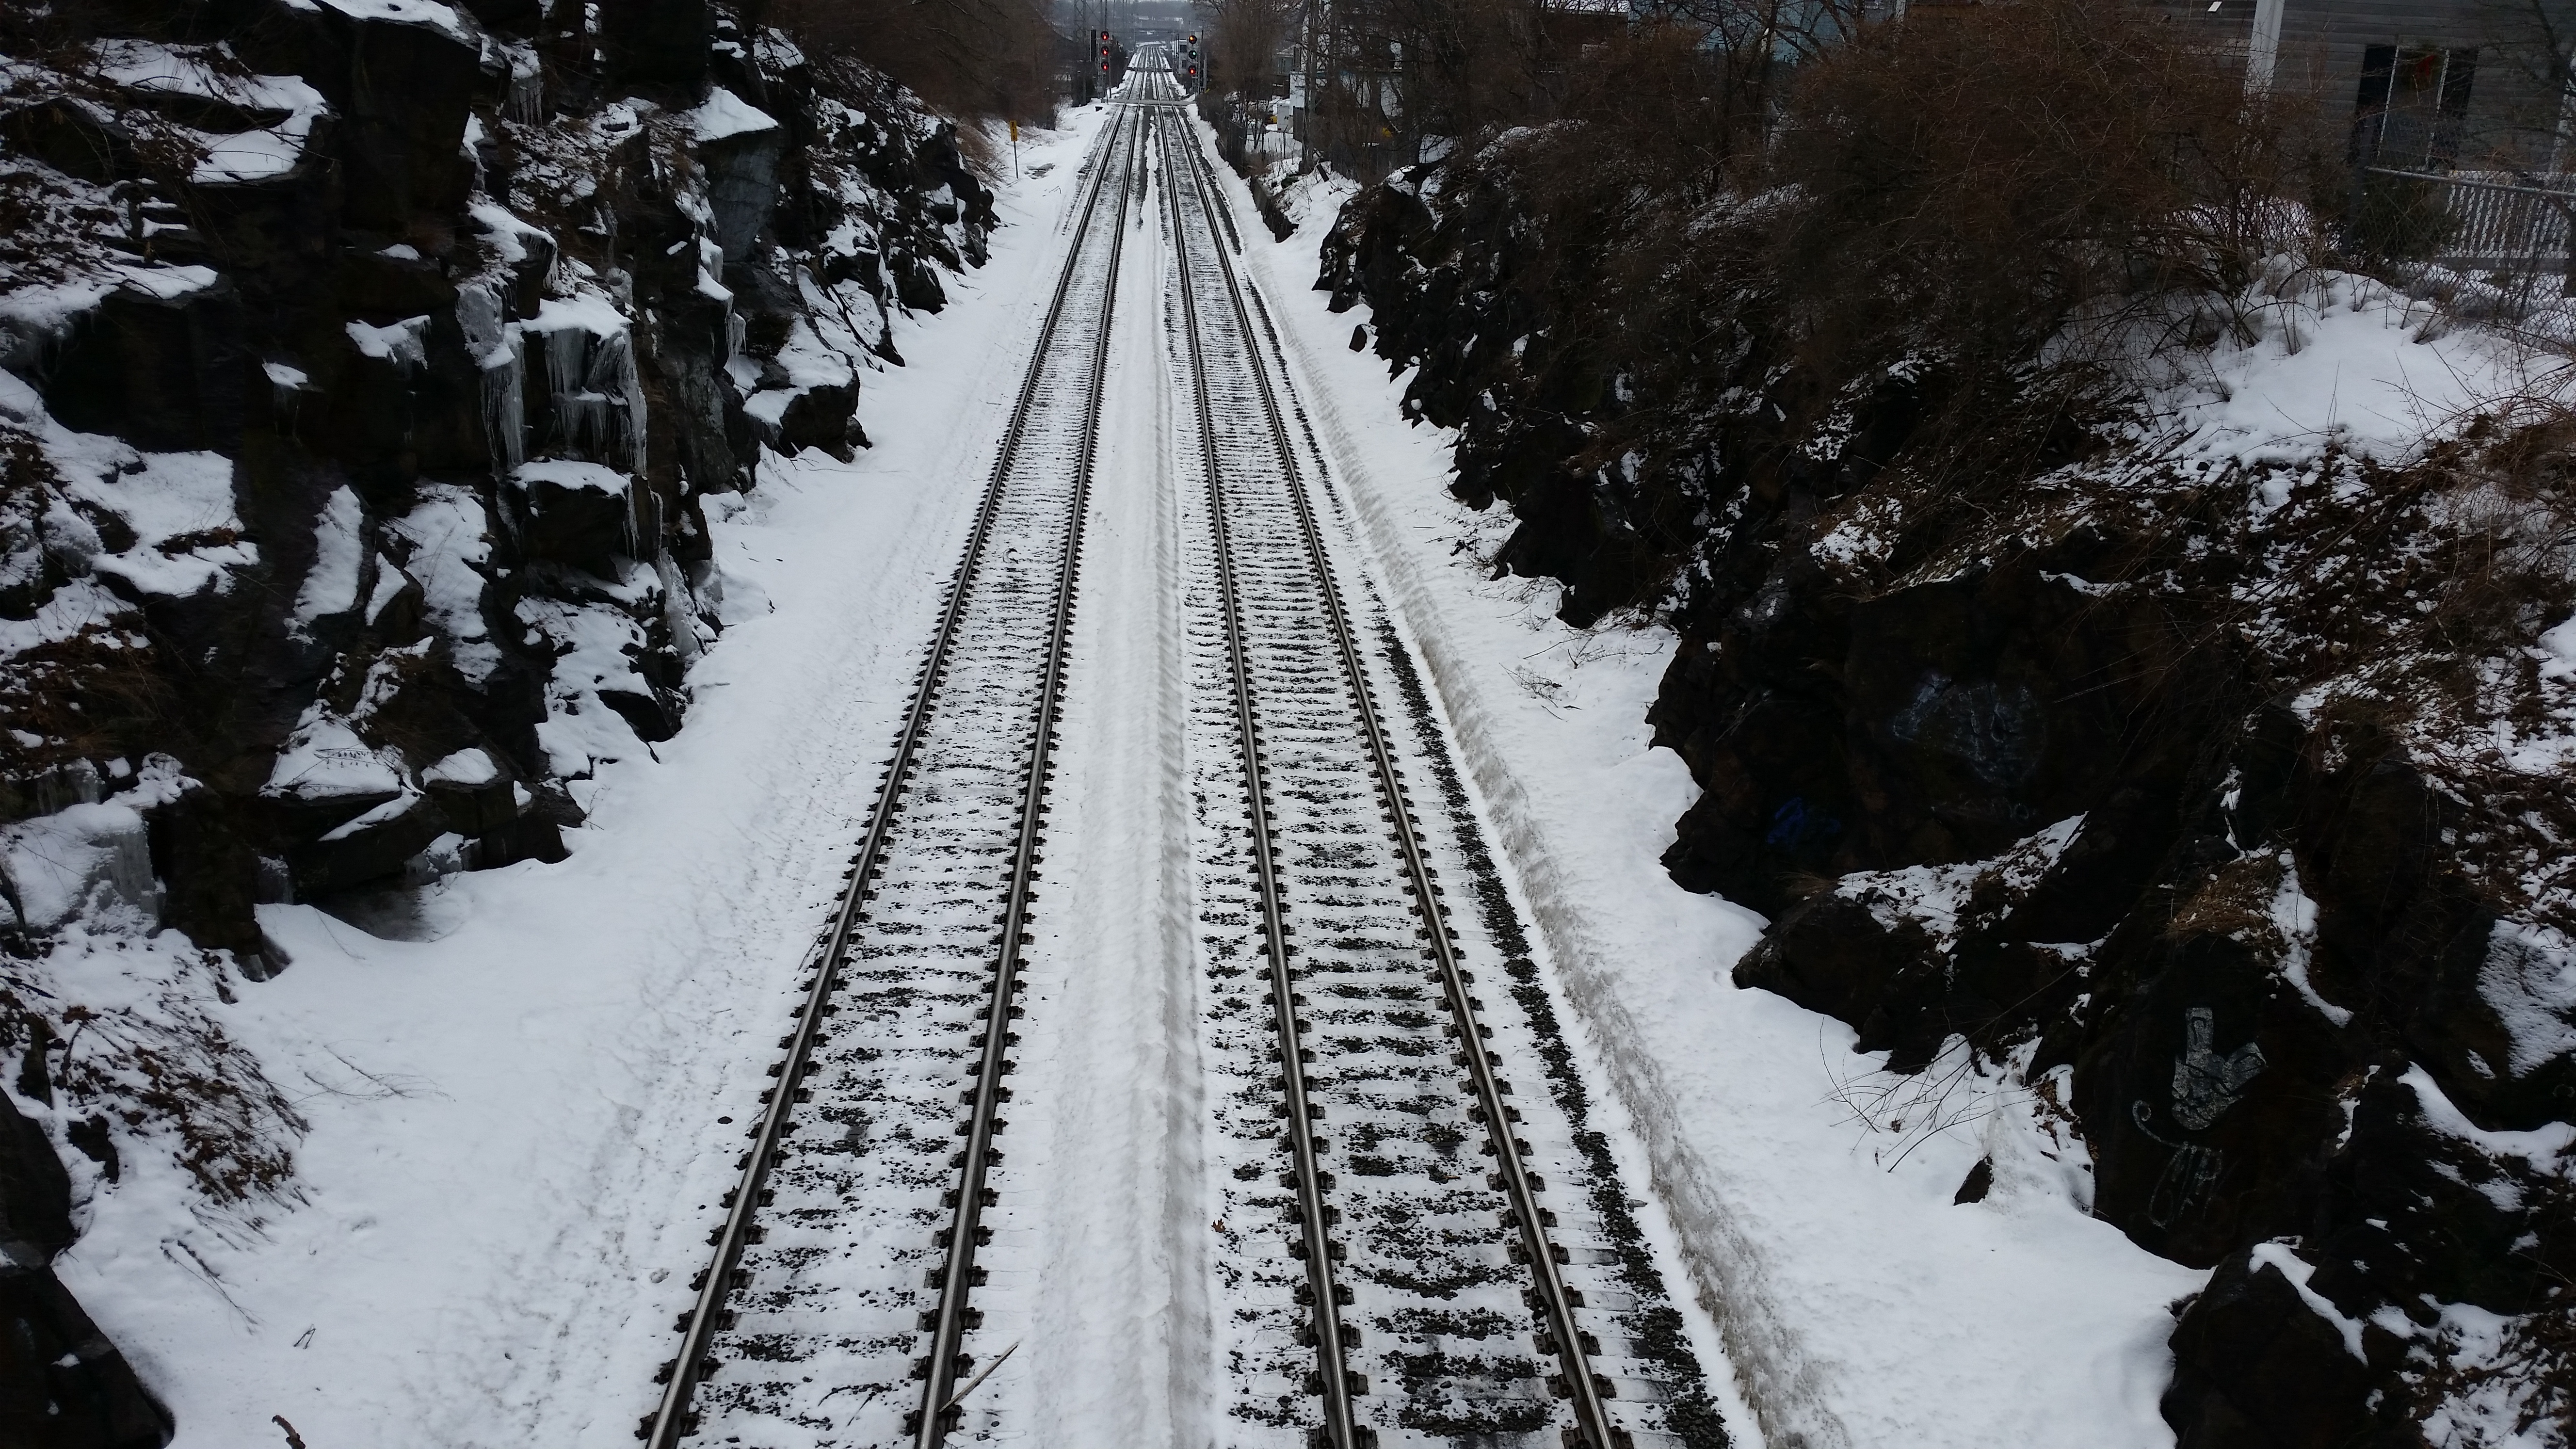 Going Home. By L Eaton (Snowy Train Tracks - 20150321_130326 [CC BY-SA 2.0 http://creativecommons.org/licenses/by-sa/2.0], via Wikimedia Commons).